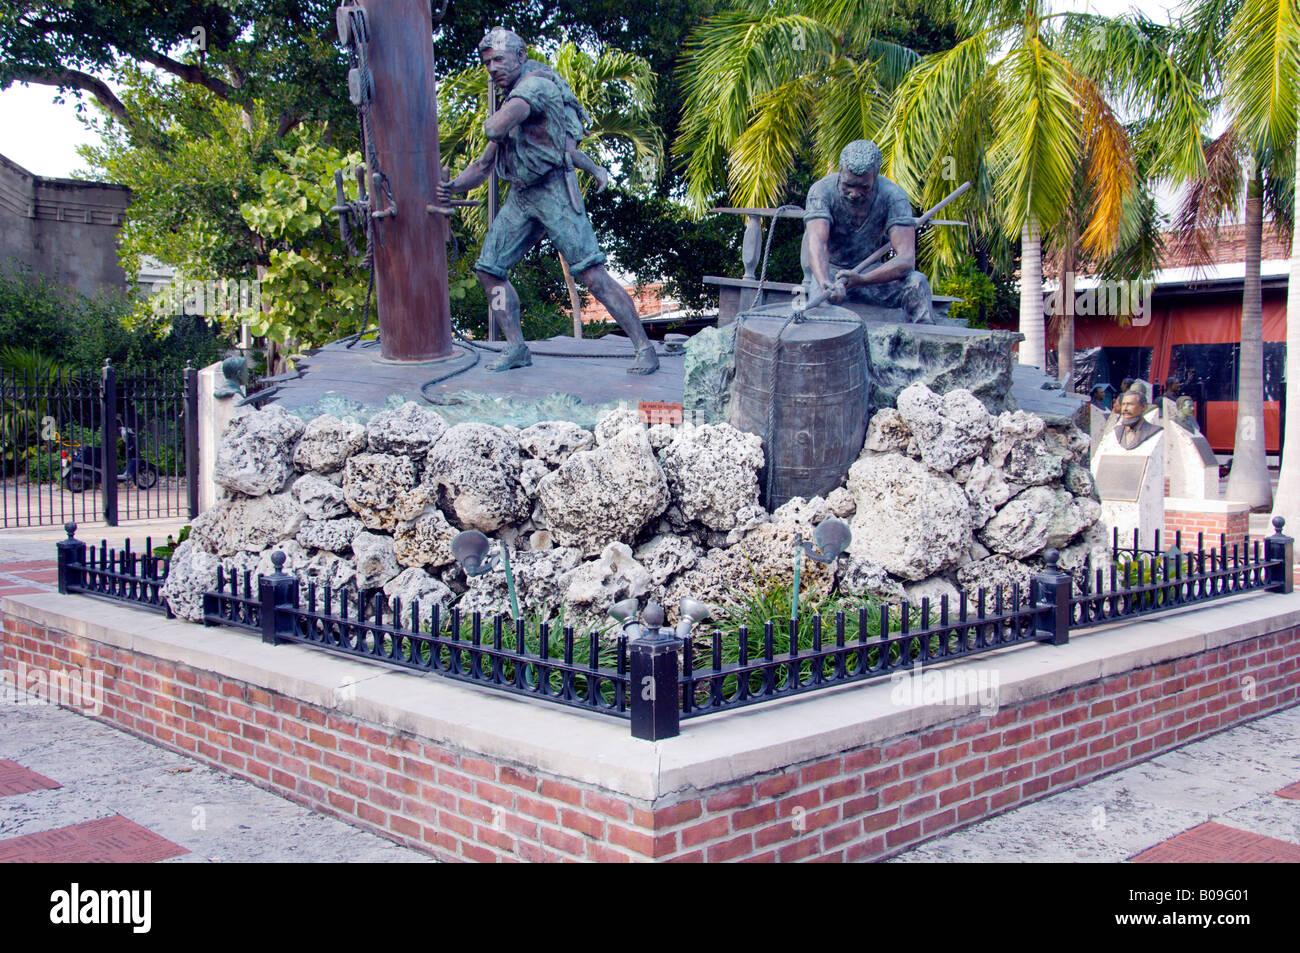 An historic seafaring monument in Key West Florida USA - Stock Image